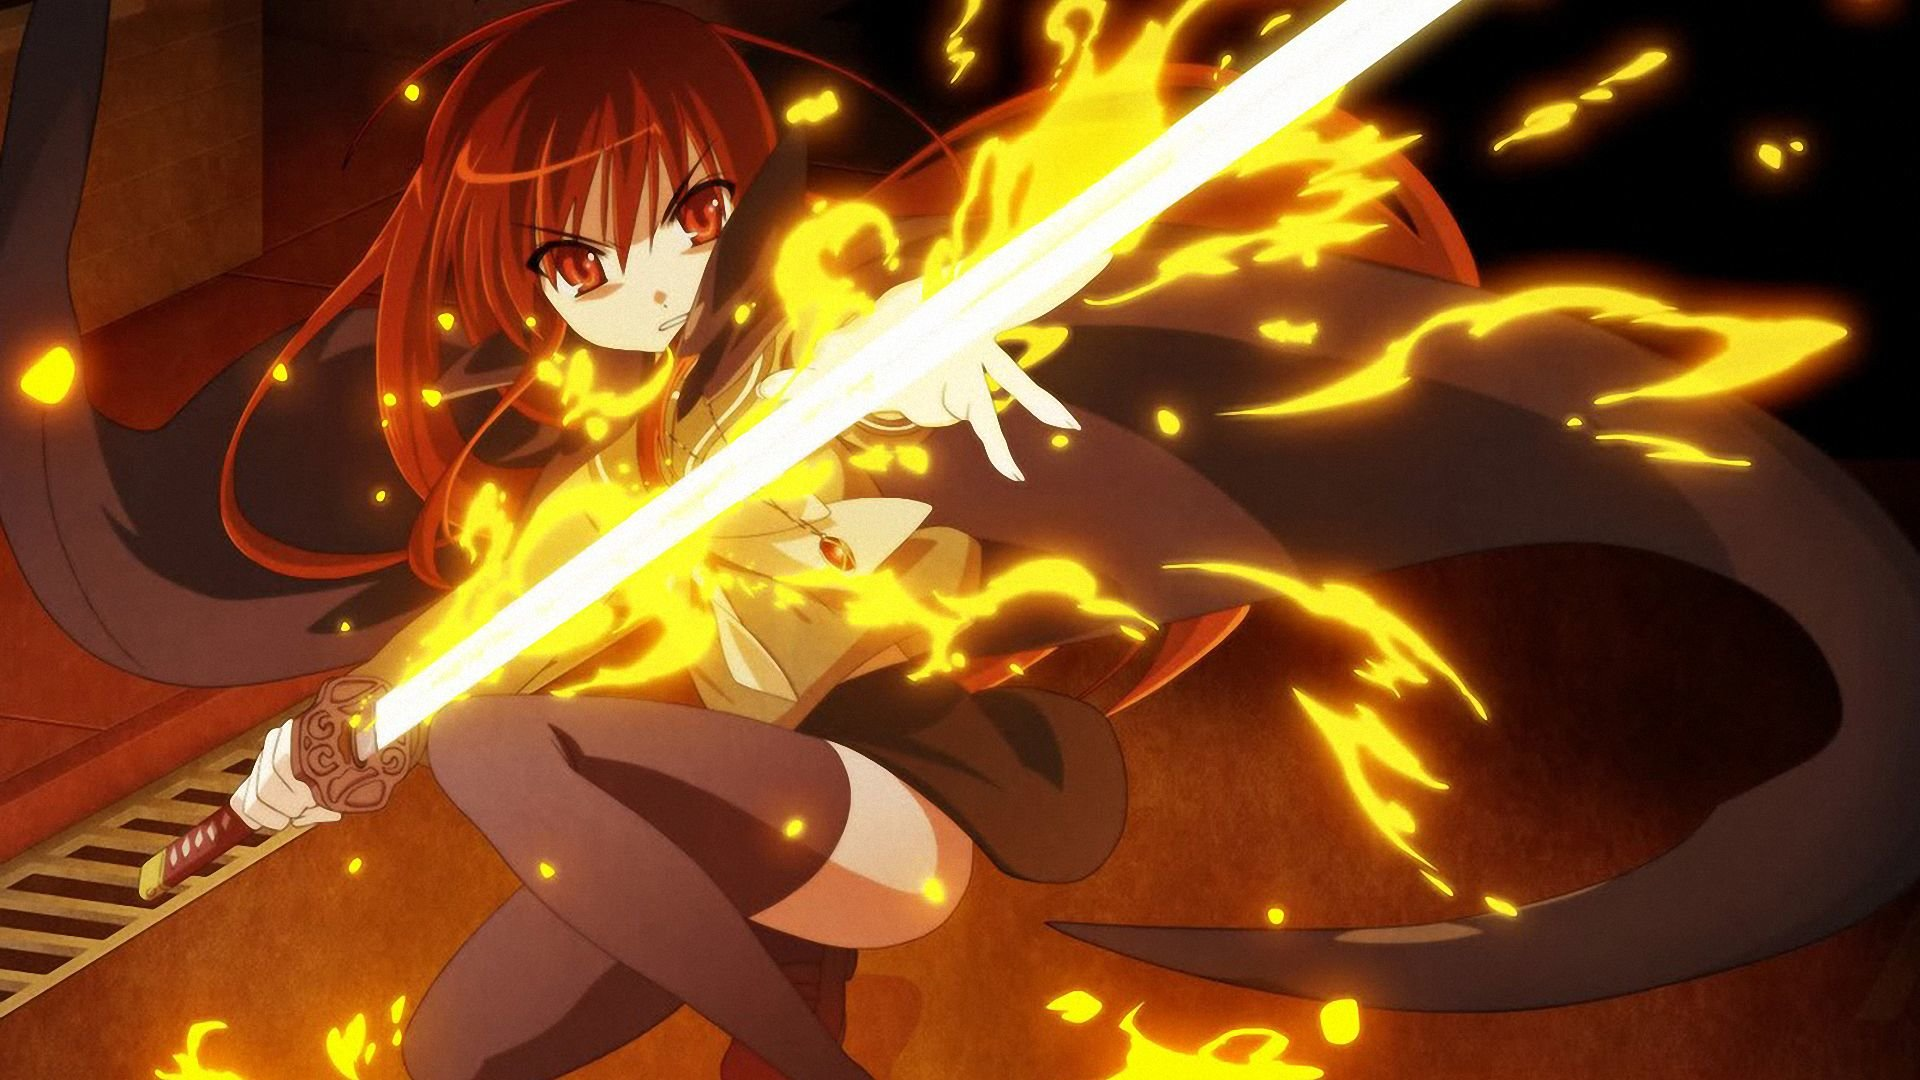 Awesome Shakugan No Shana free background ID:284537 for hd 1920x1080 desktop